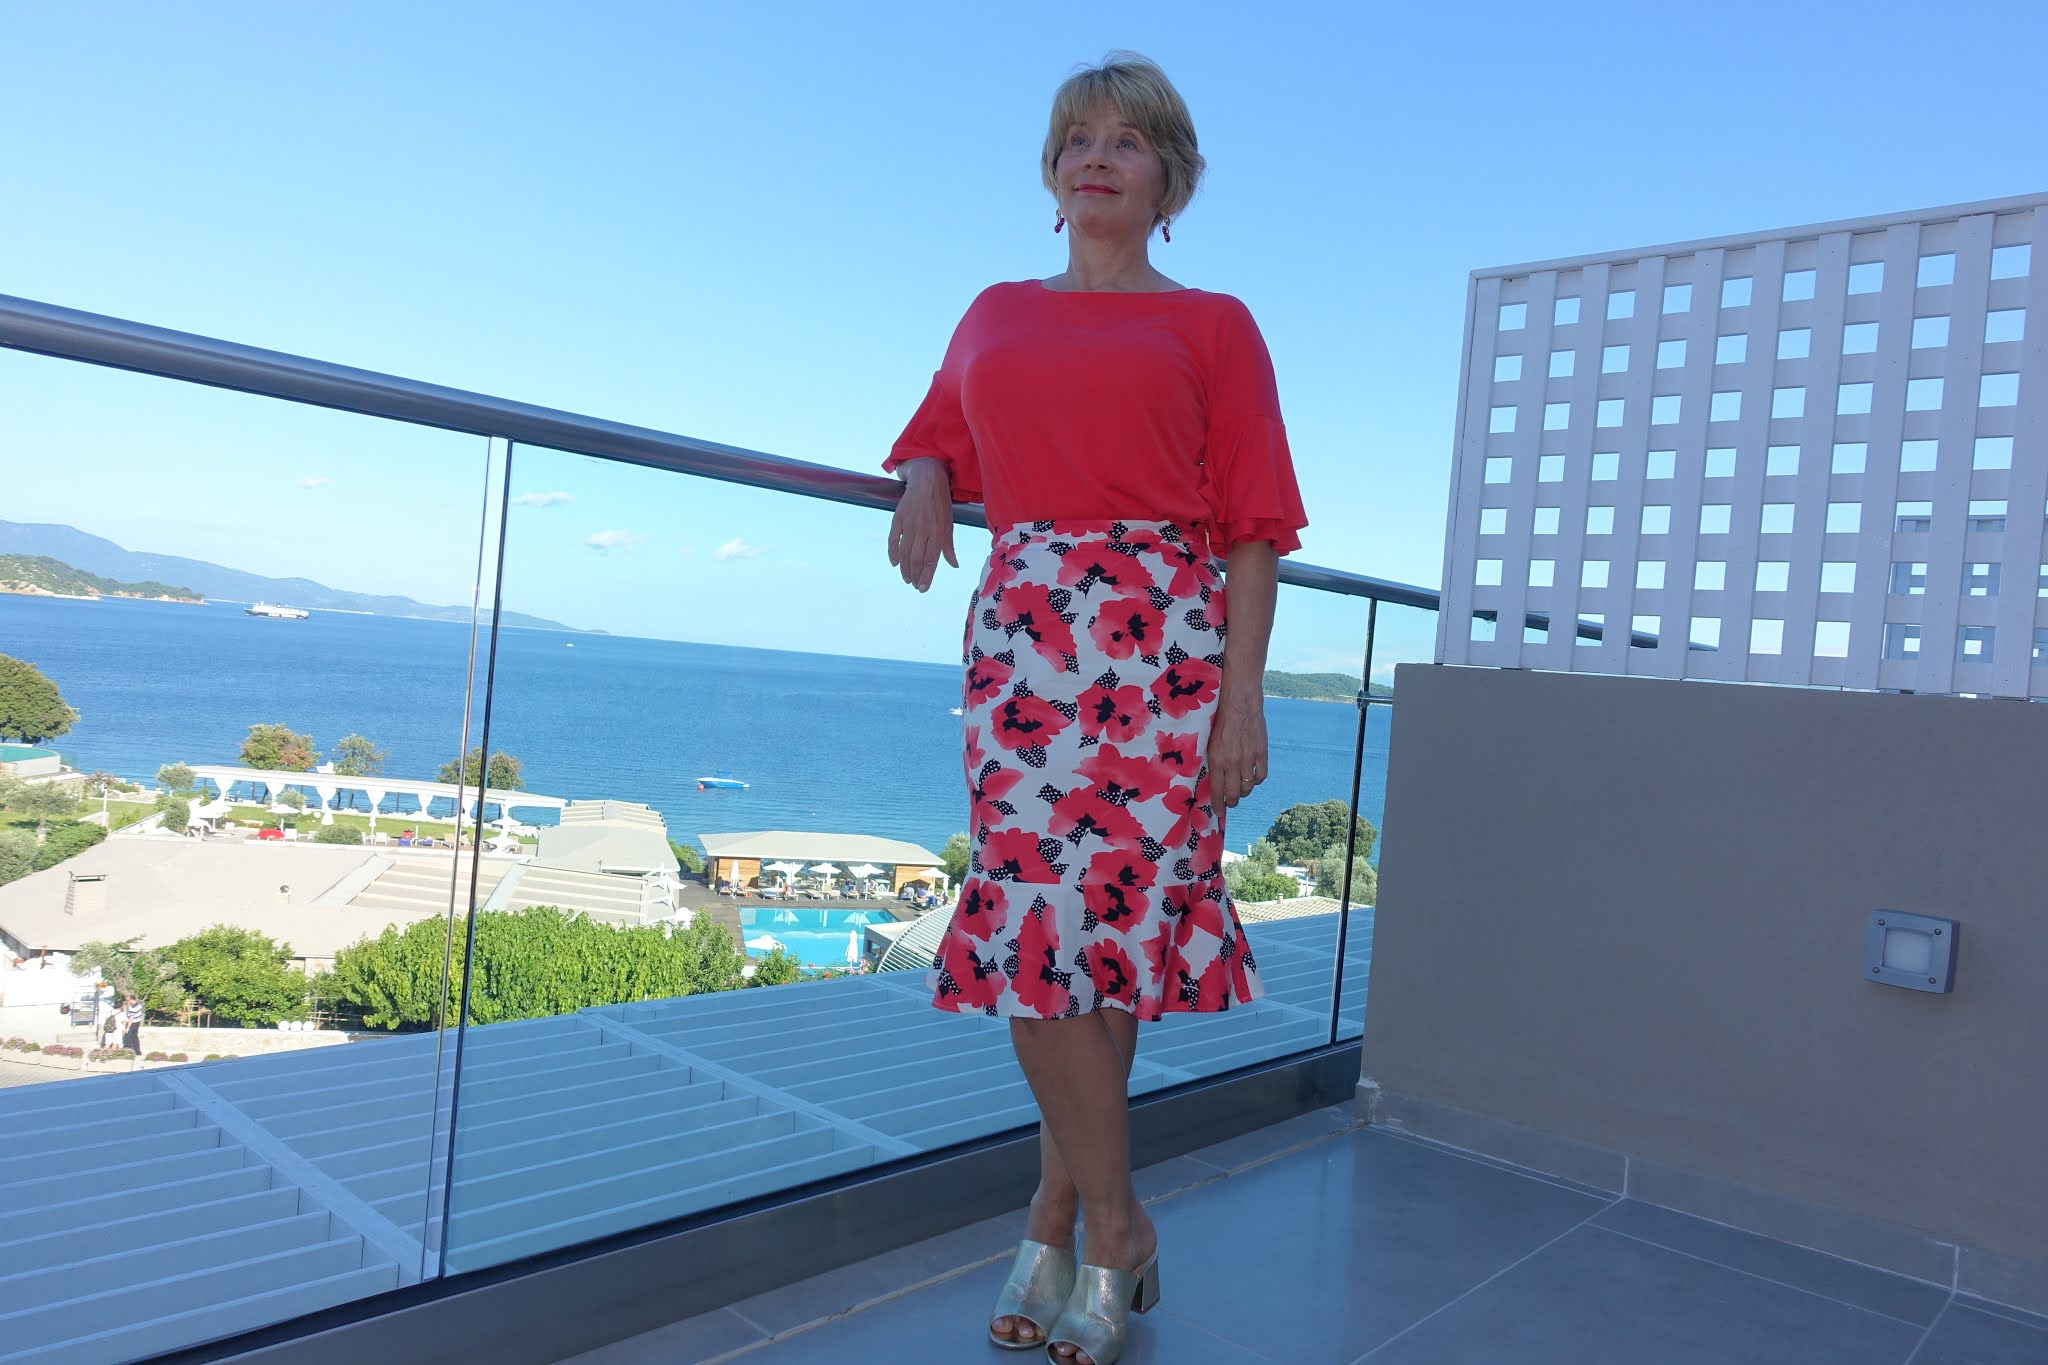 Gail Hanlon in Skiathos overlooking Vasilias beach, wearing a red and white poppy skirt, red top with statement sleeves and gold mules